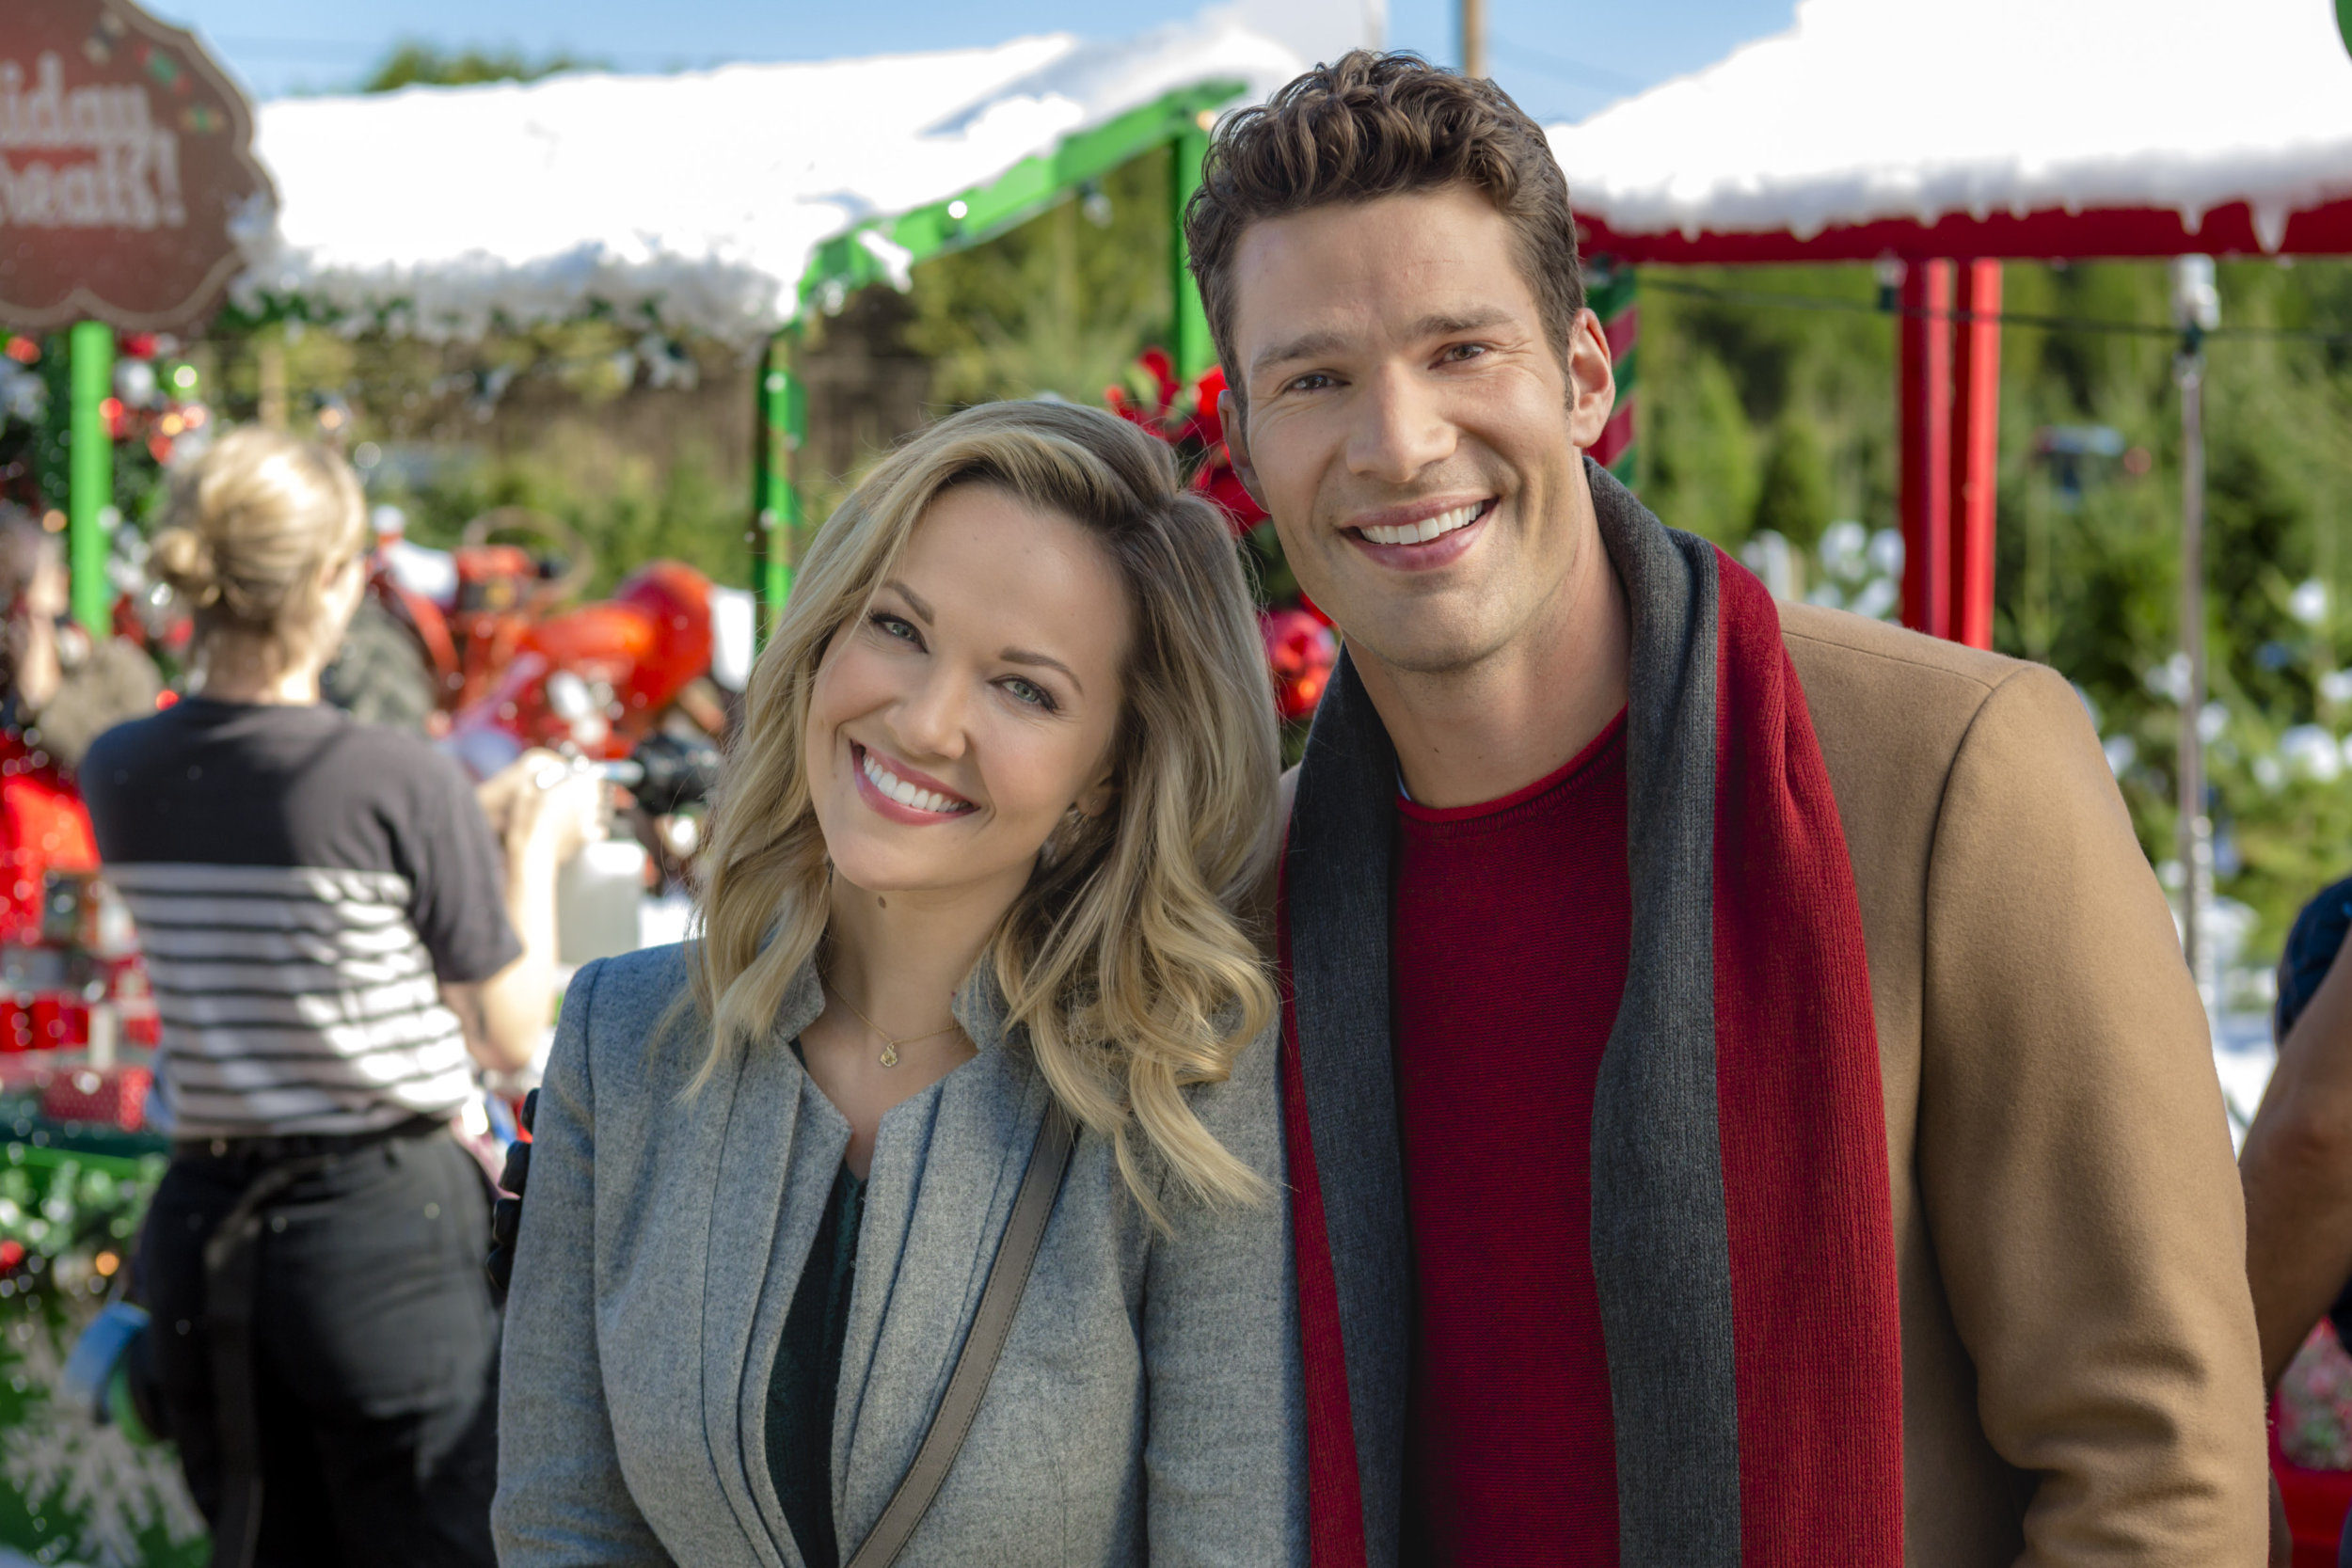 Holiday Movie Hd Wallpaper Countdown To Christmas Preview With Love Christmas